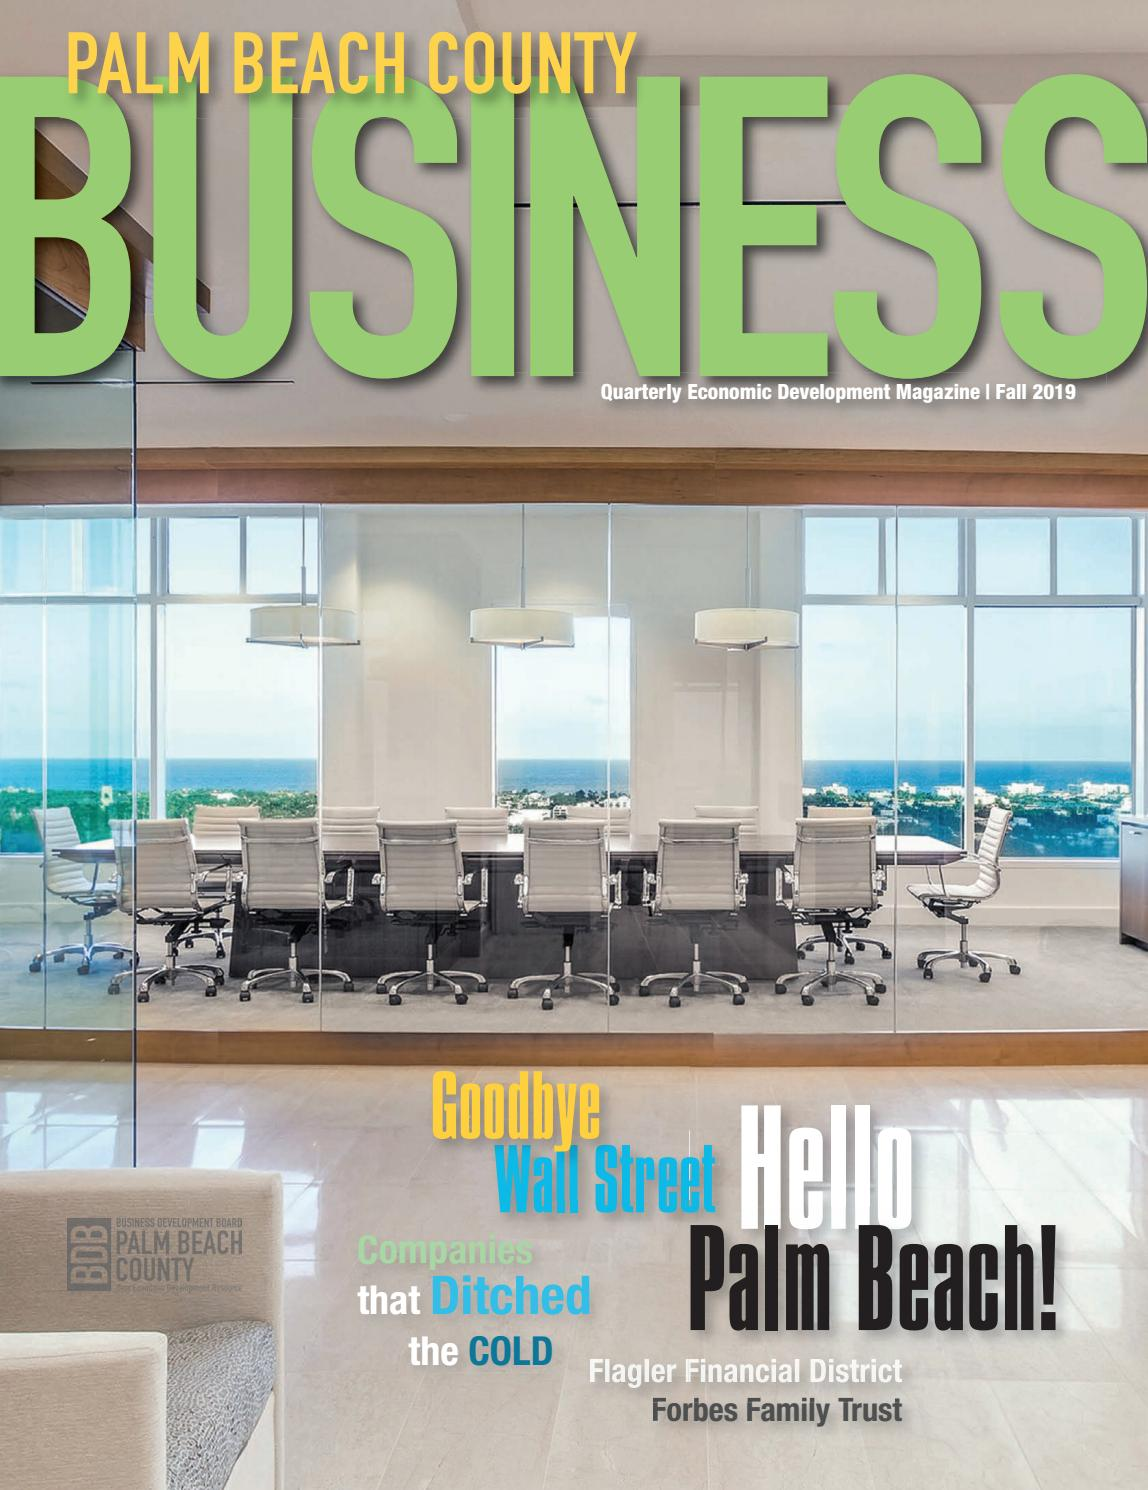 Palm Beach County Business Fall 2019 By Passport Publications Media Corporation Issuu